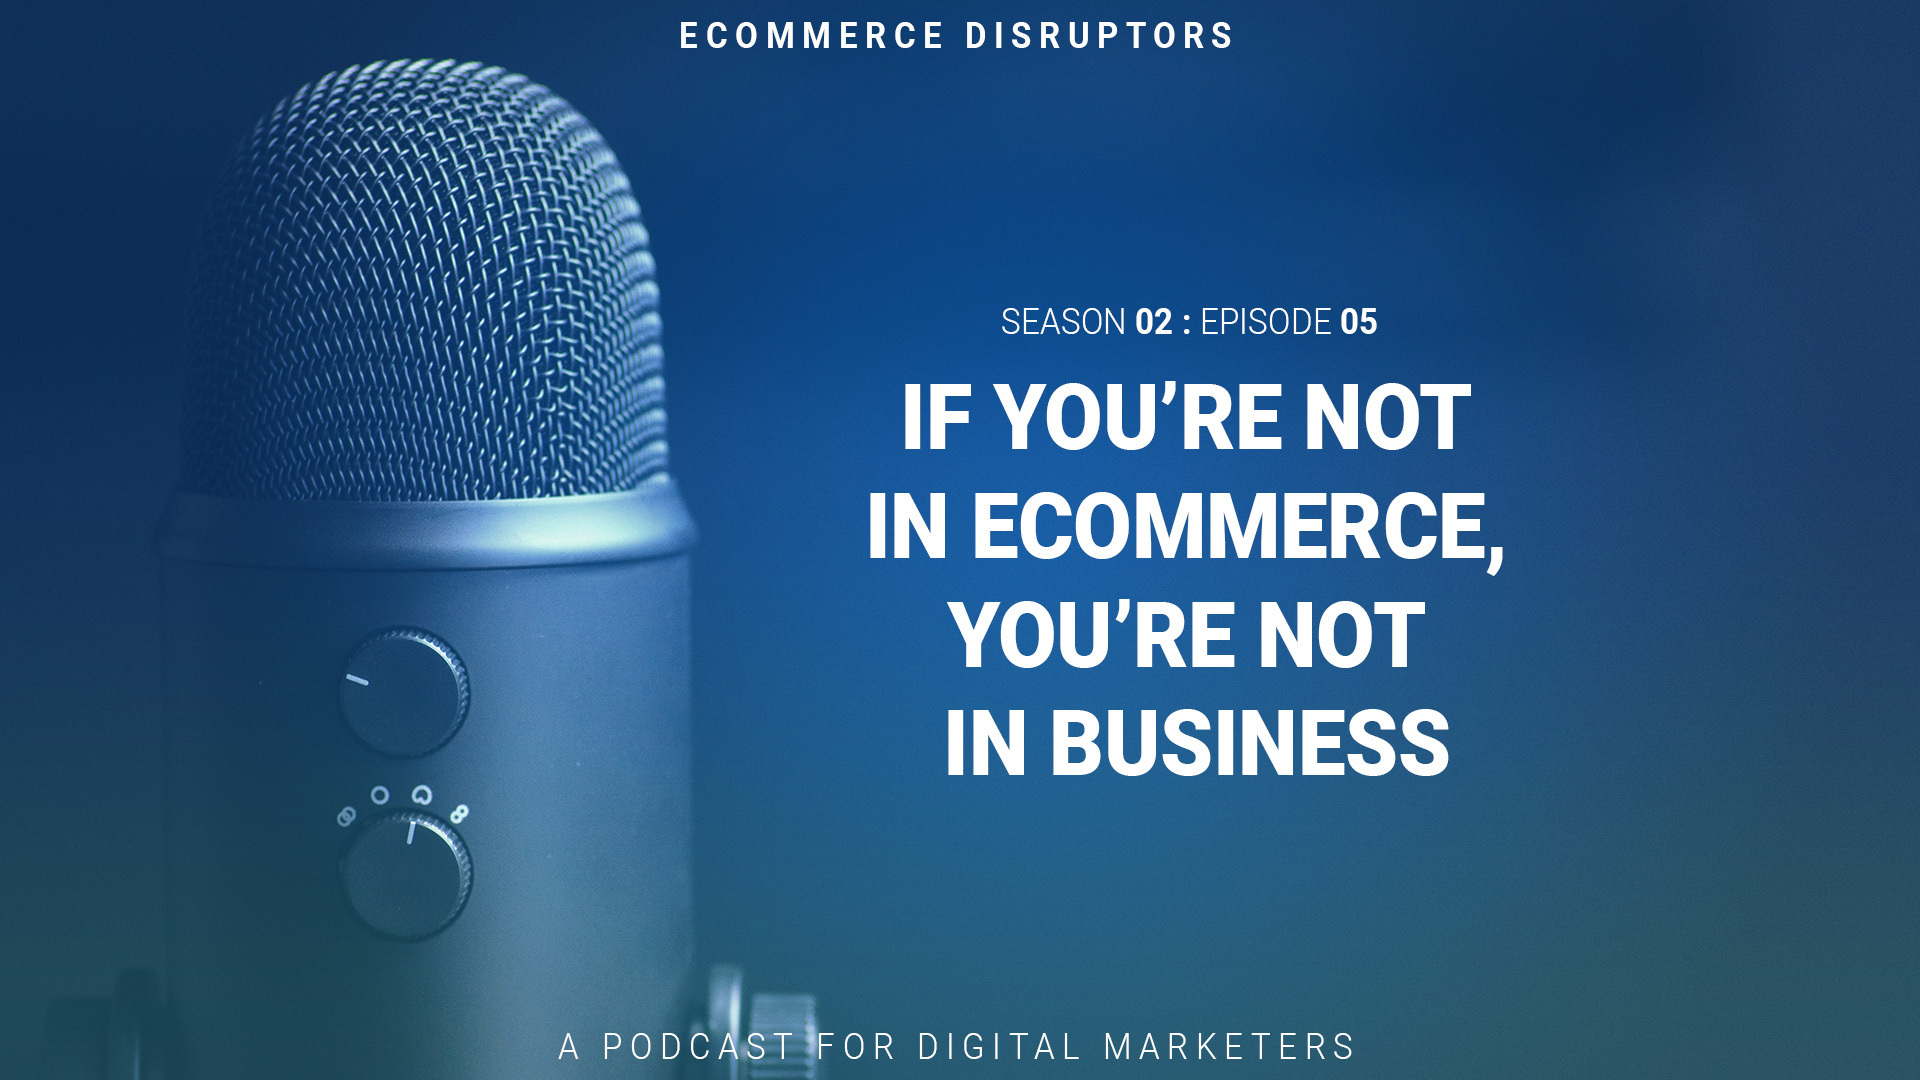 If You're Not In Ecommerce, You're Not In Business